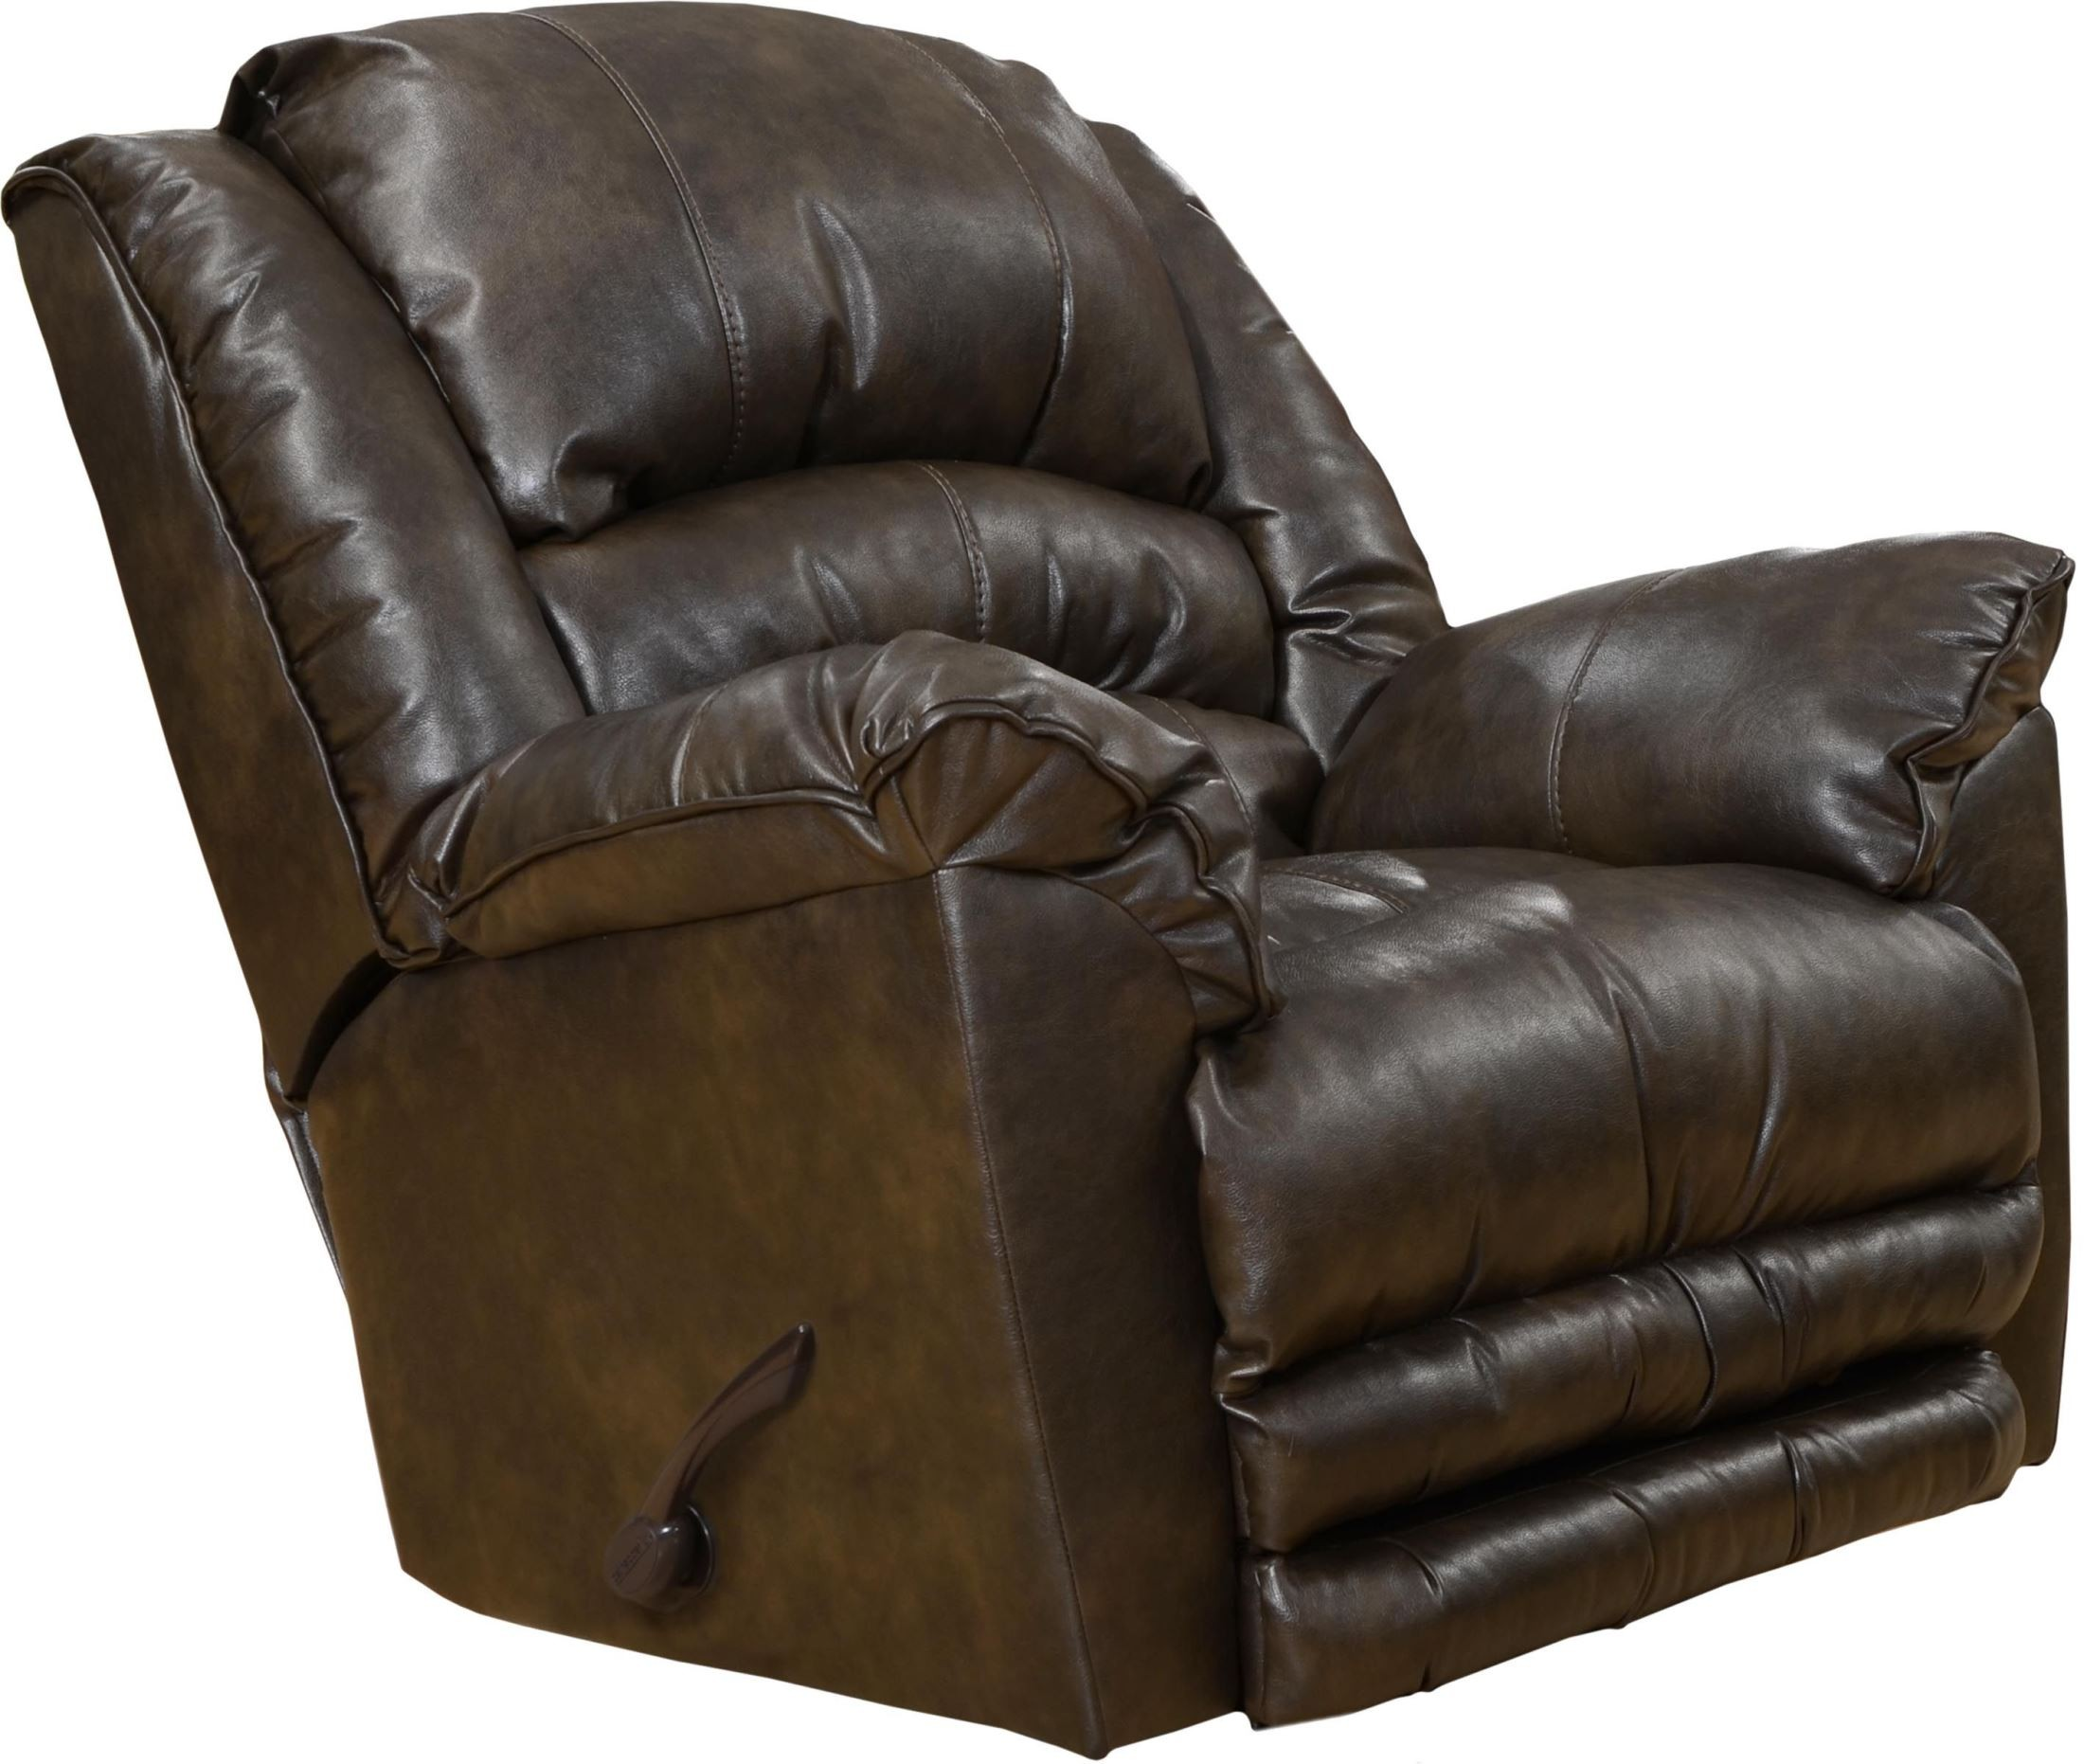 Fillmore timber bonded leather recliner from catnapper for Catnapper cloud nine chaise recliner